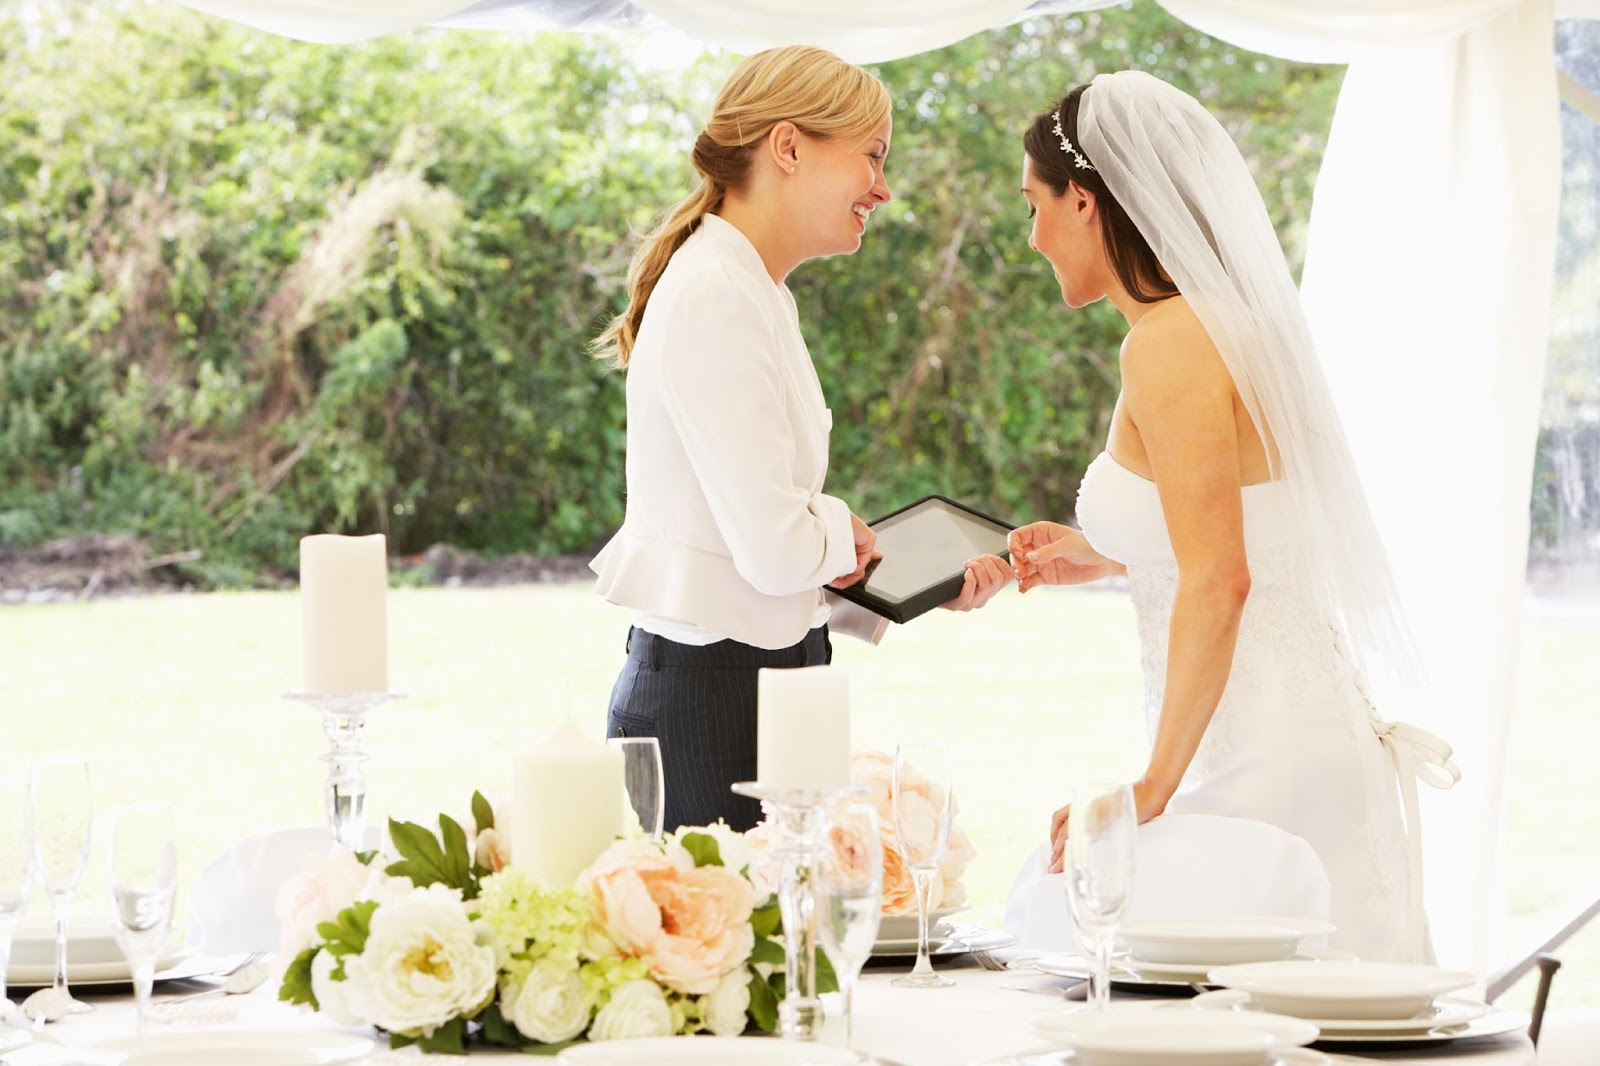 Wedding Planners And Coordinators Provide An Experience For A Once In Lifetime Moment Because It Only Happens You Shouldnt Be Going Through